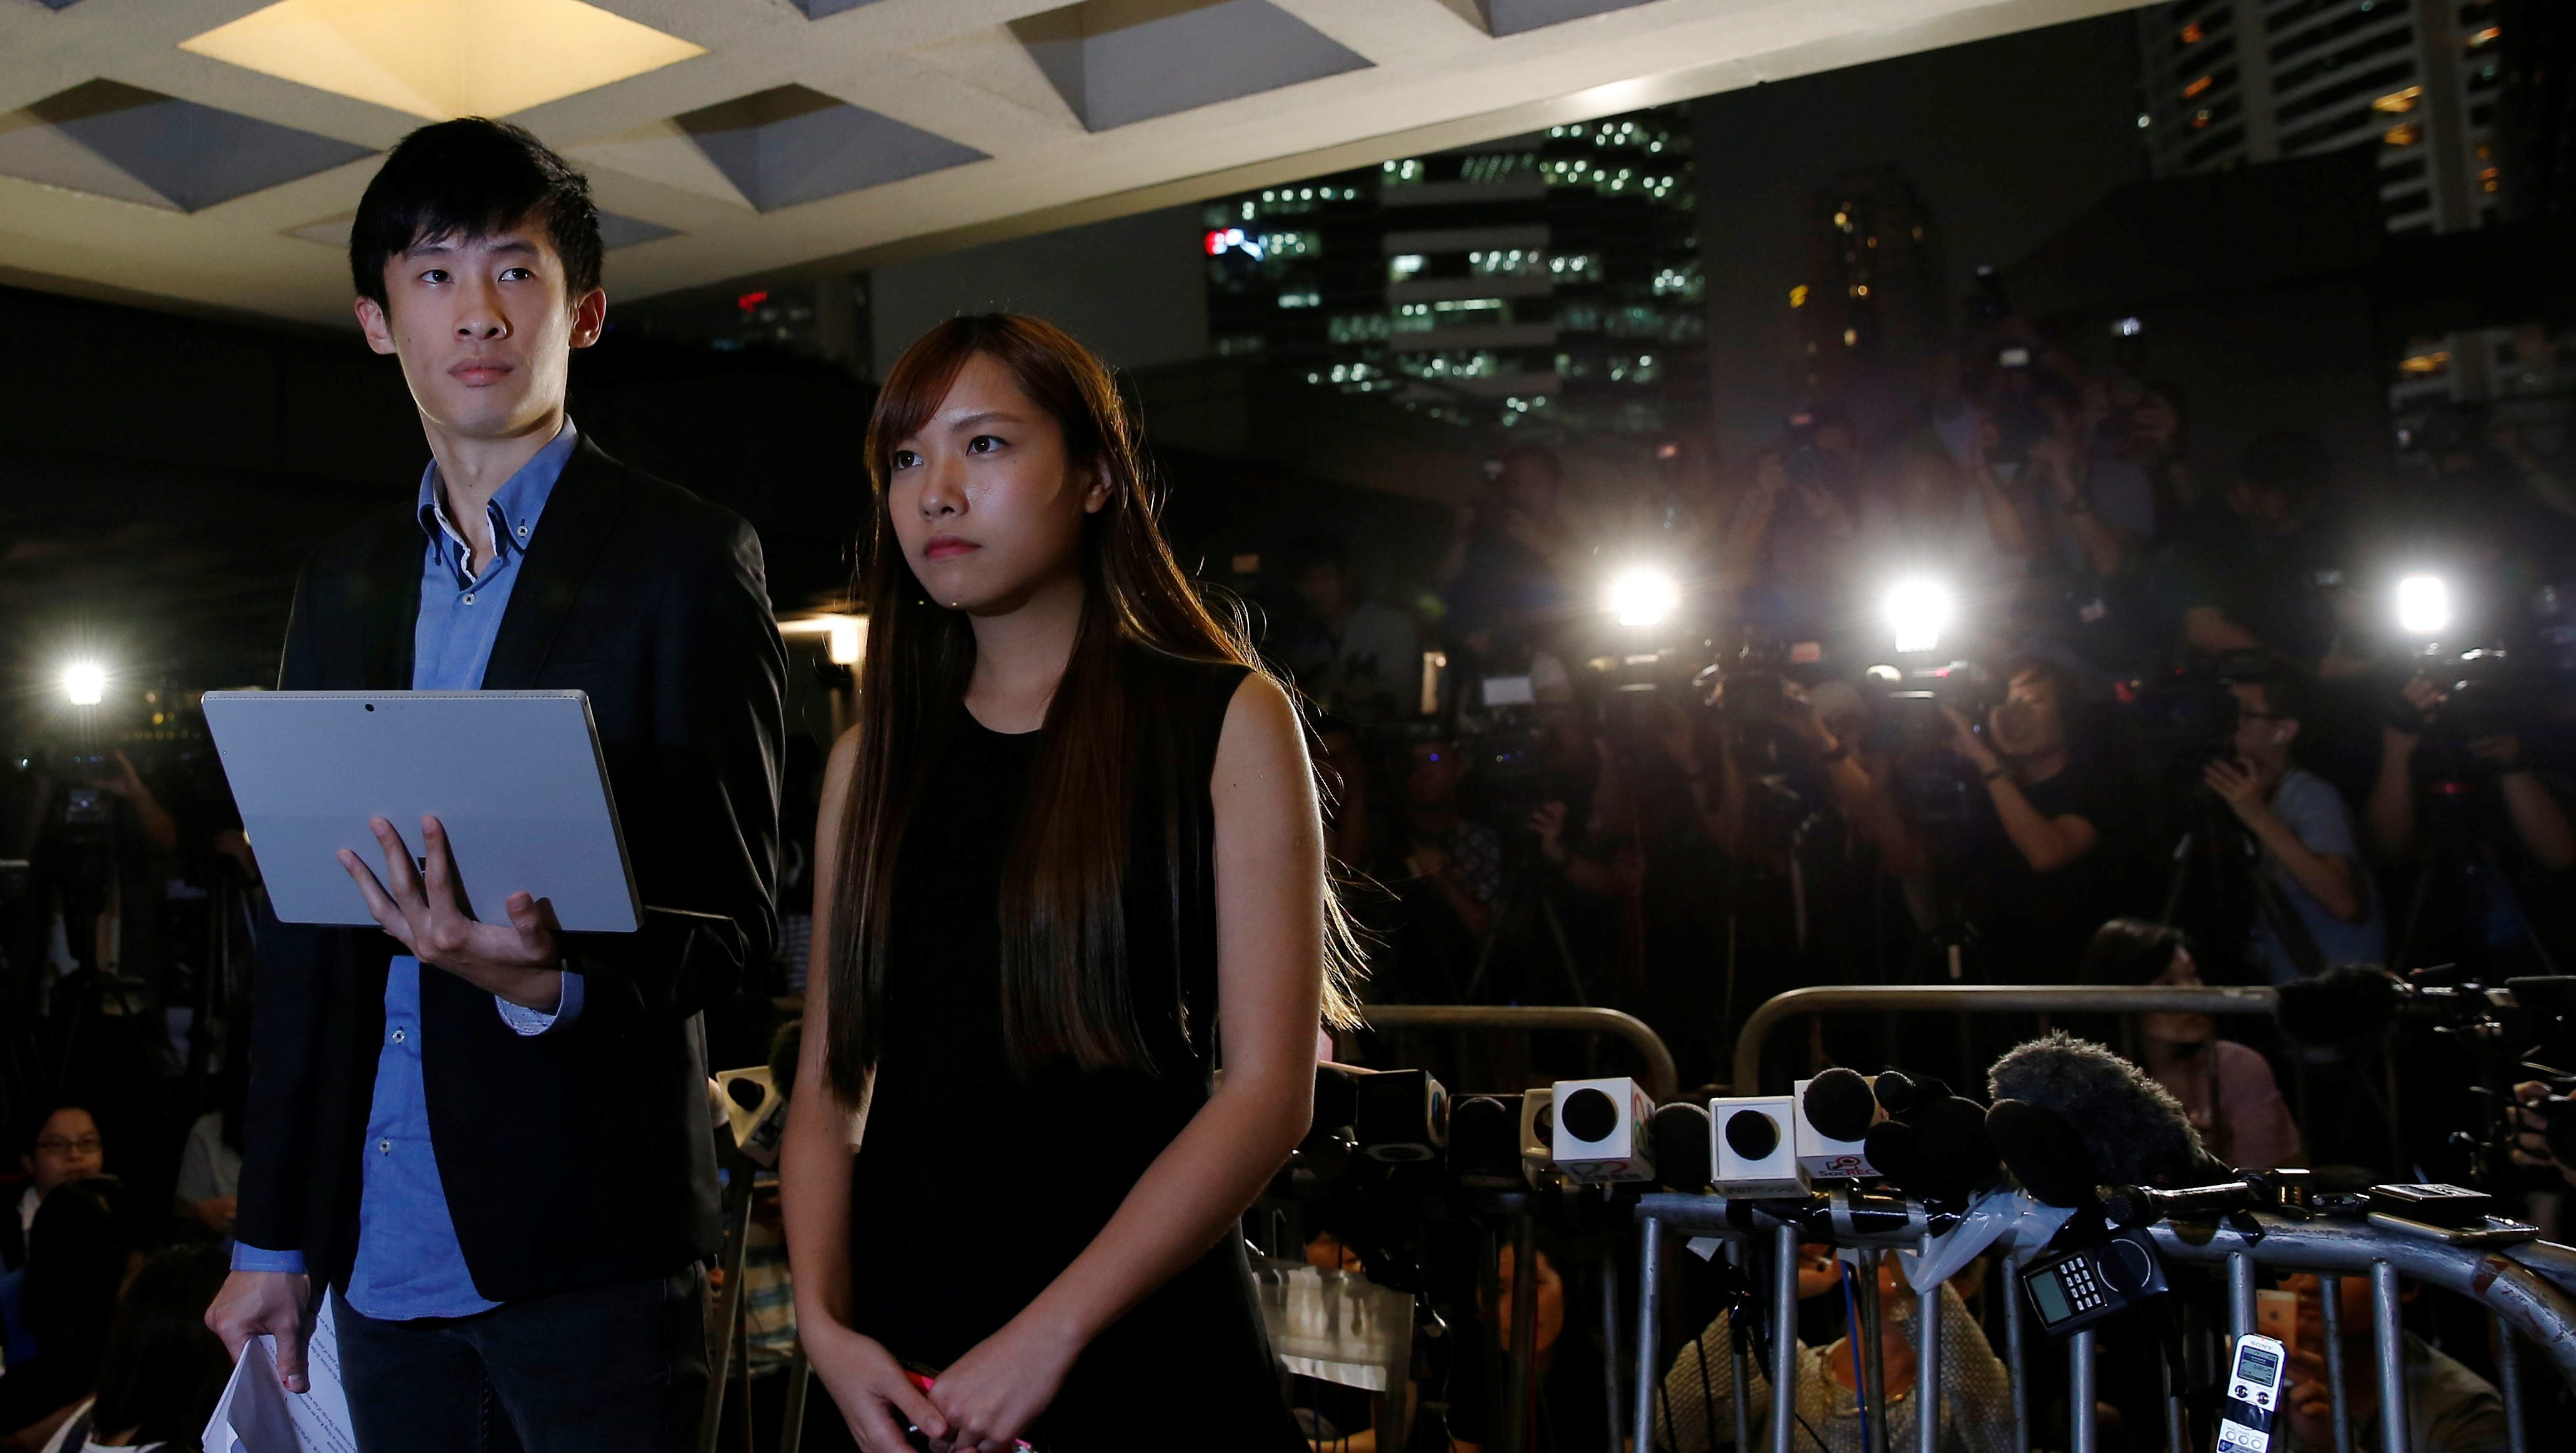 Democratically-elected legislators Yau Wai-Ching and Baggio Leung (L) speak to media after a High Court disqualified them from taking office in Hong Kong, China November 15, 2016. REUTERS/Tyrone Siu - RTX2TQZ5